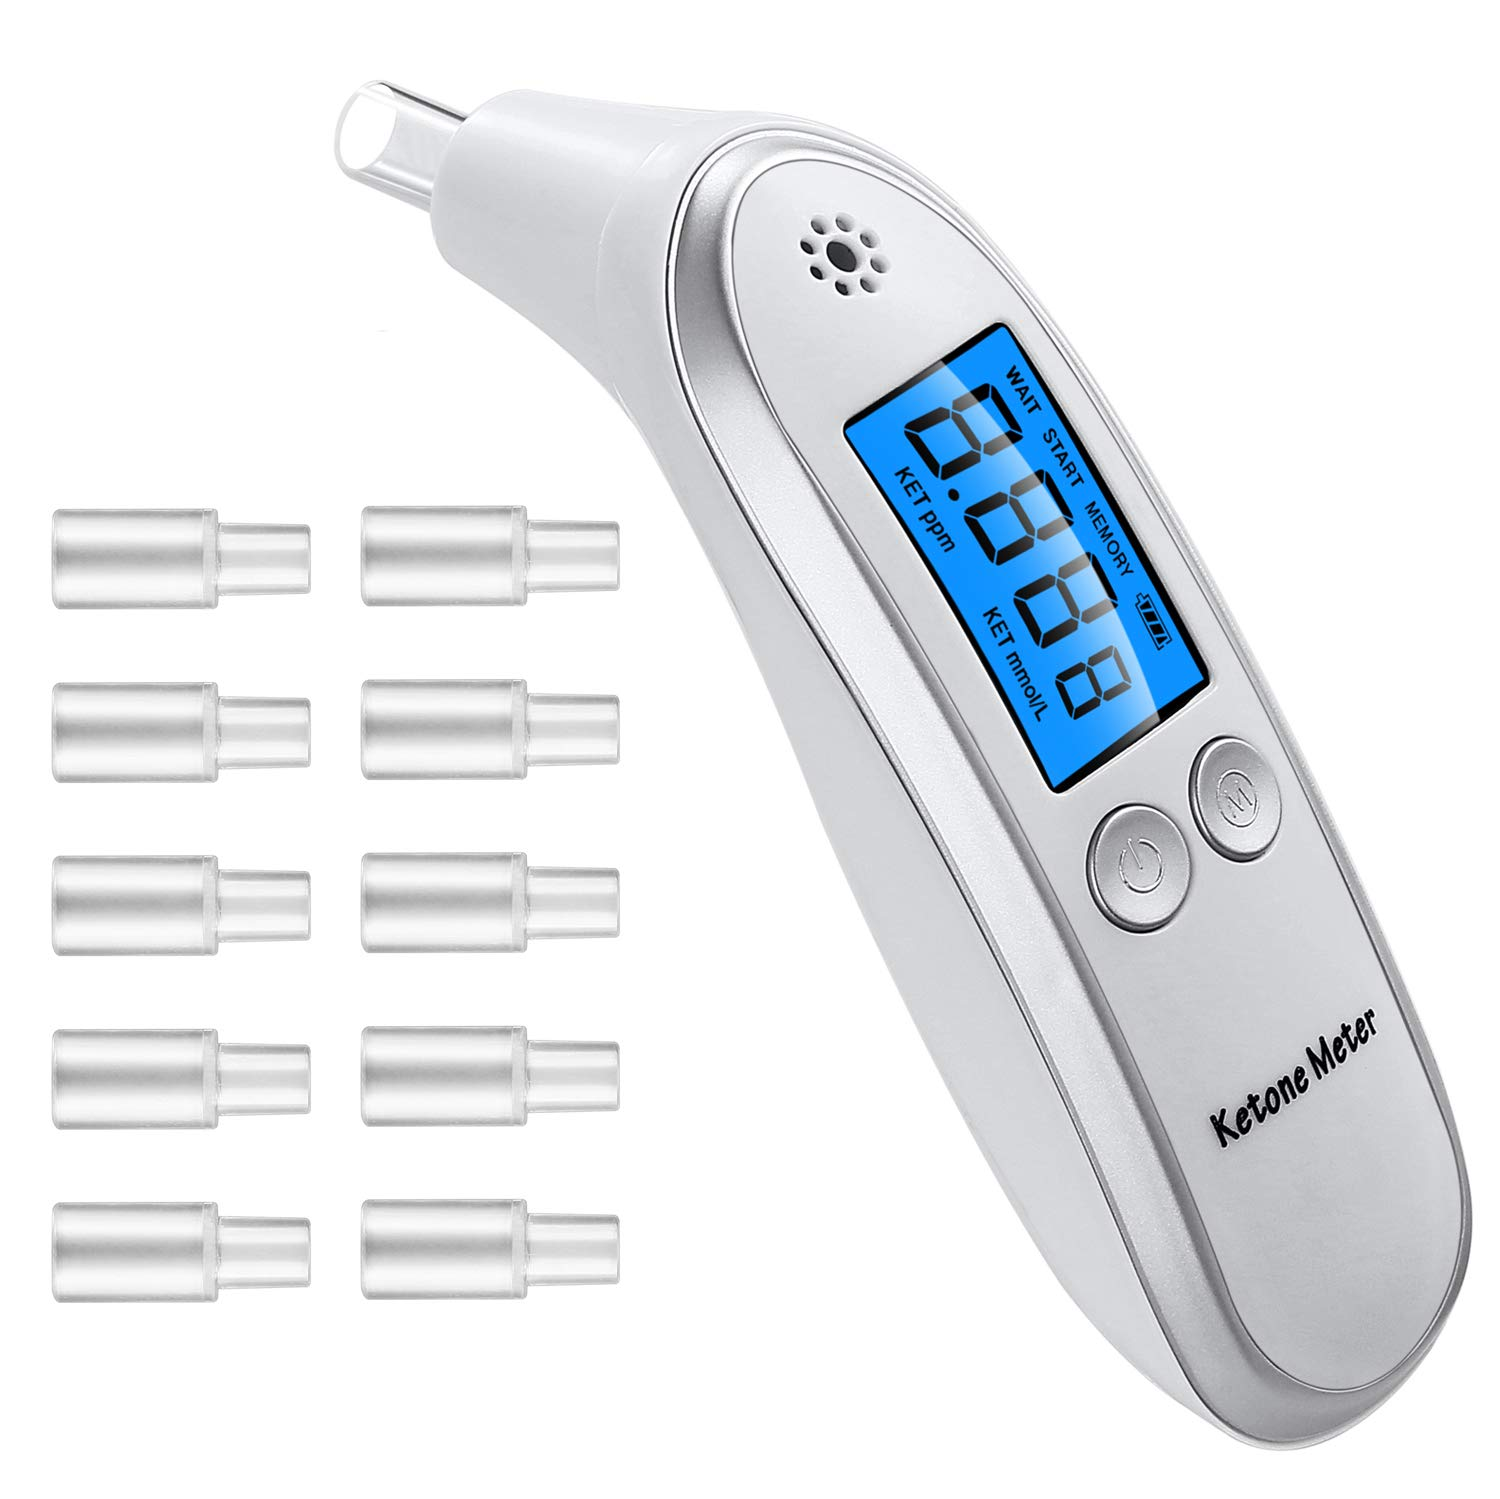 Ketone Meter, Portable Digital Ketone Breath Analyzer, Ketogenic Analyzer with 10pcs Replaceable Mouthpieces - White by SXINEN